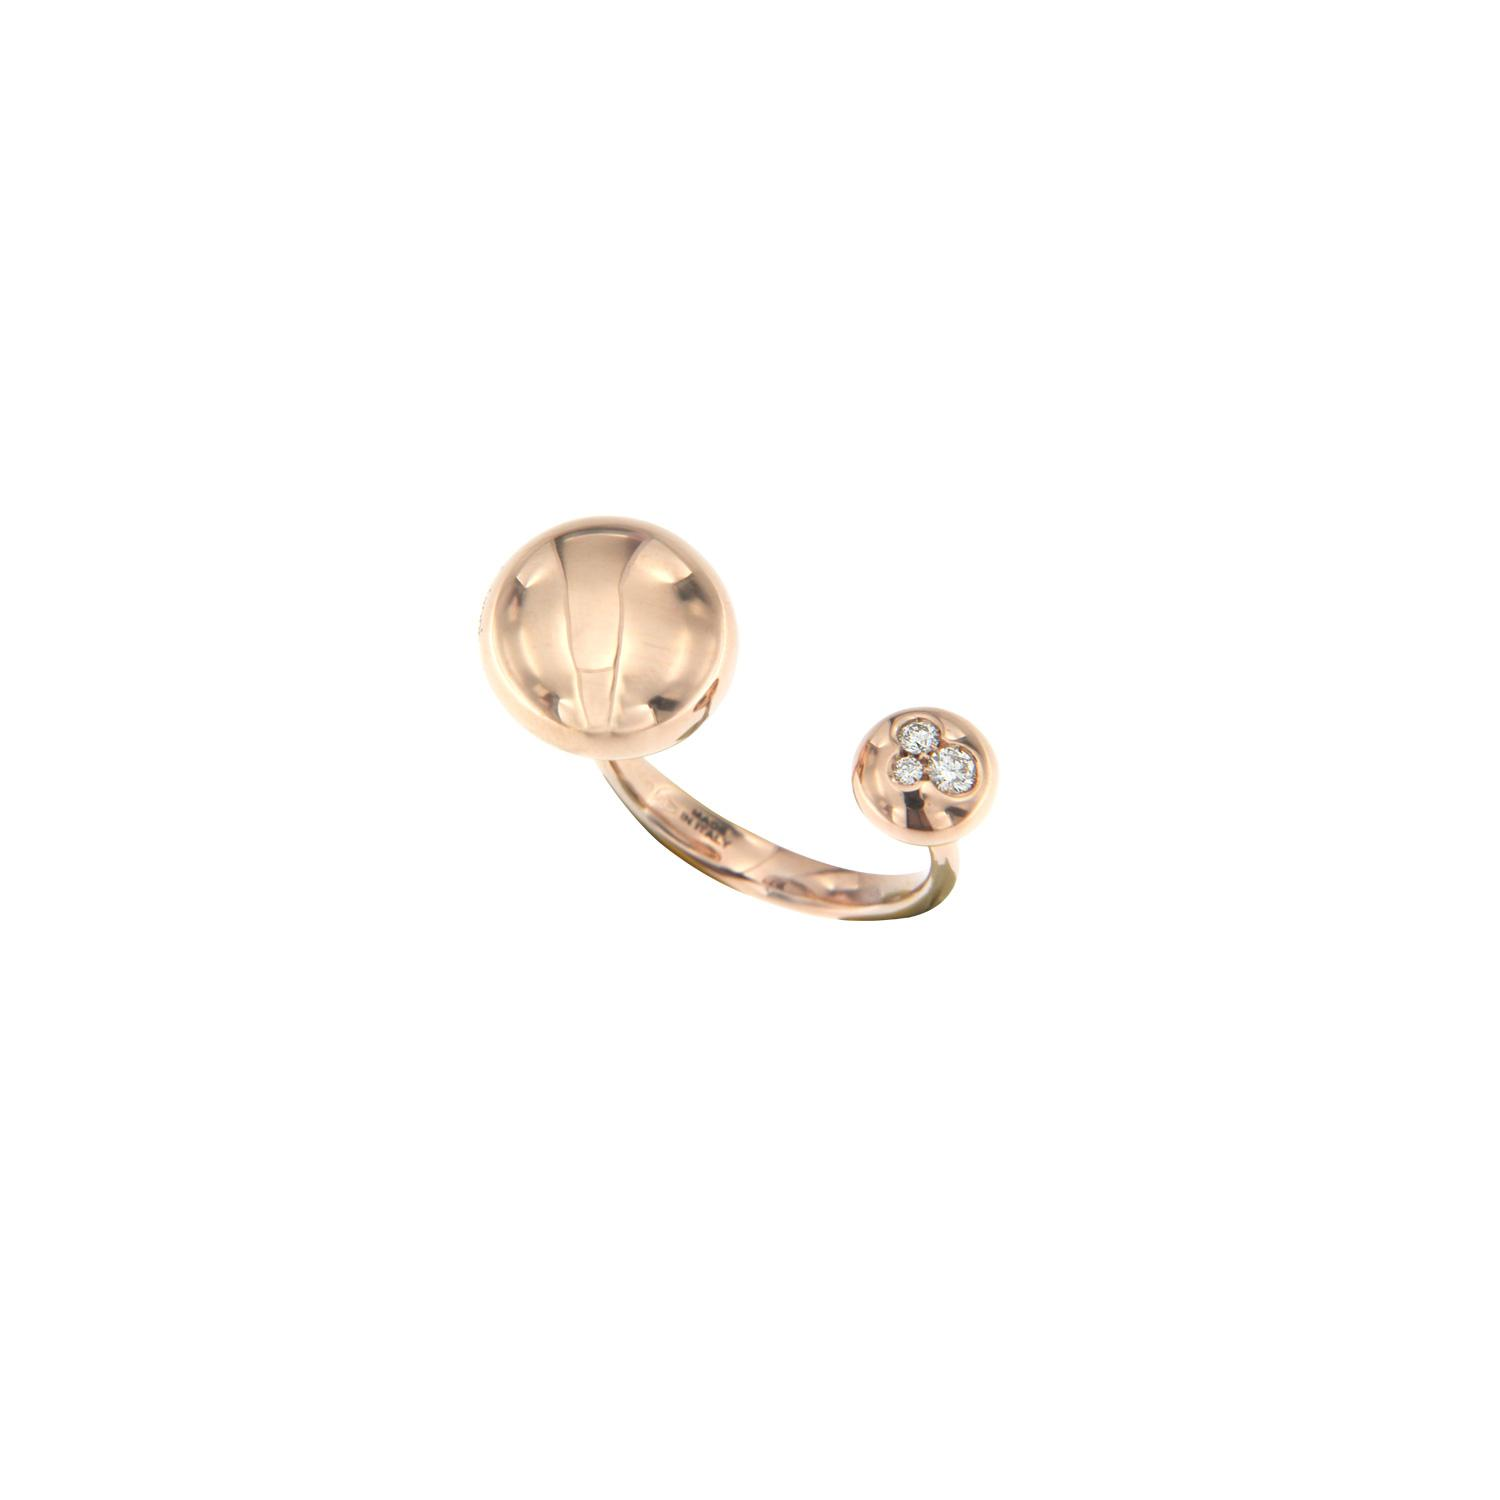 Anello borchie in oro rosa e diamanti